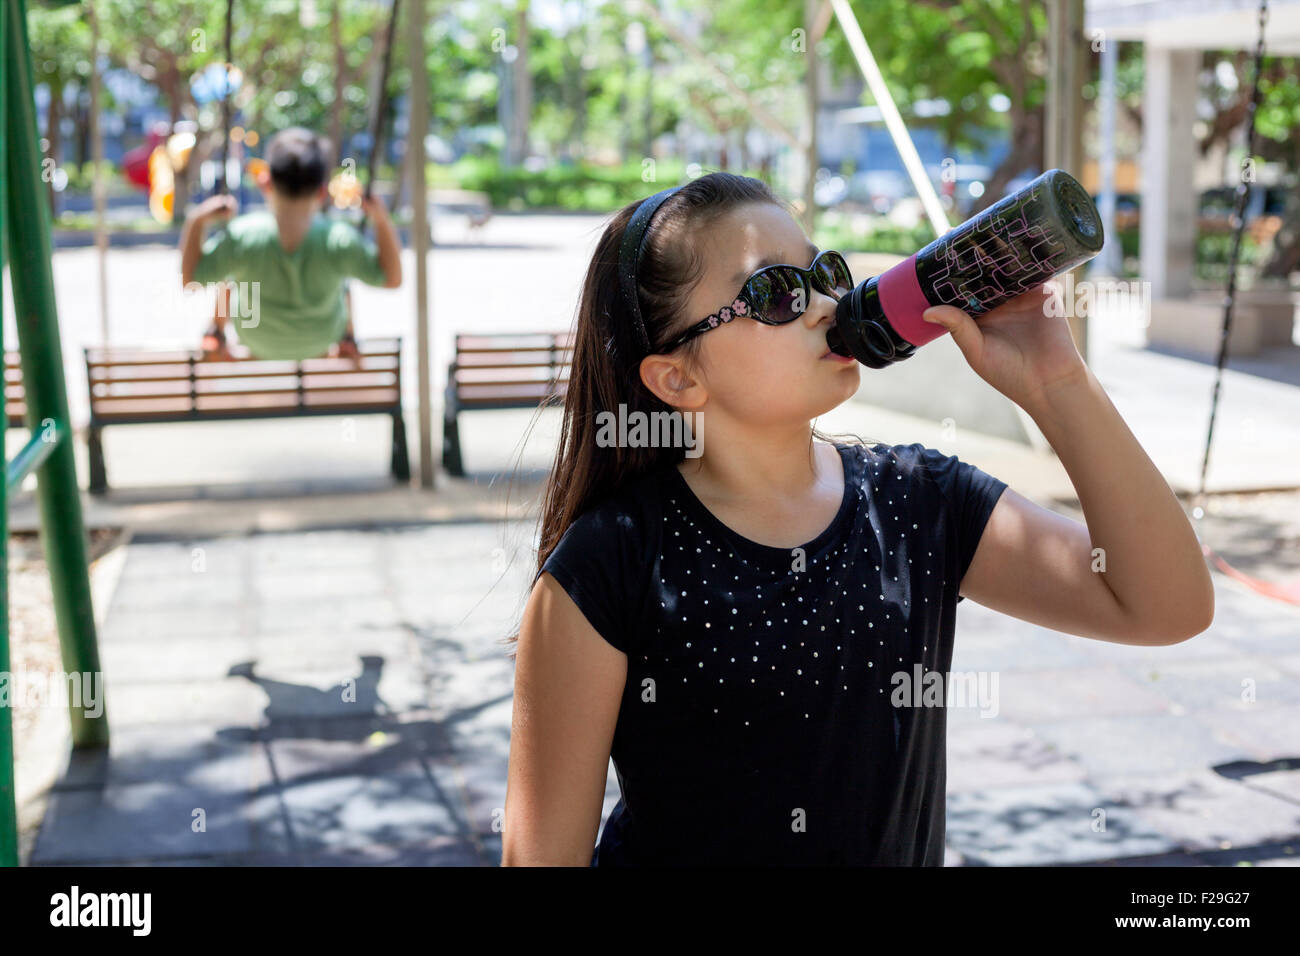 young mixed race girl drinking to cool down in the park - Stock Image